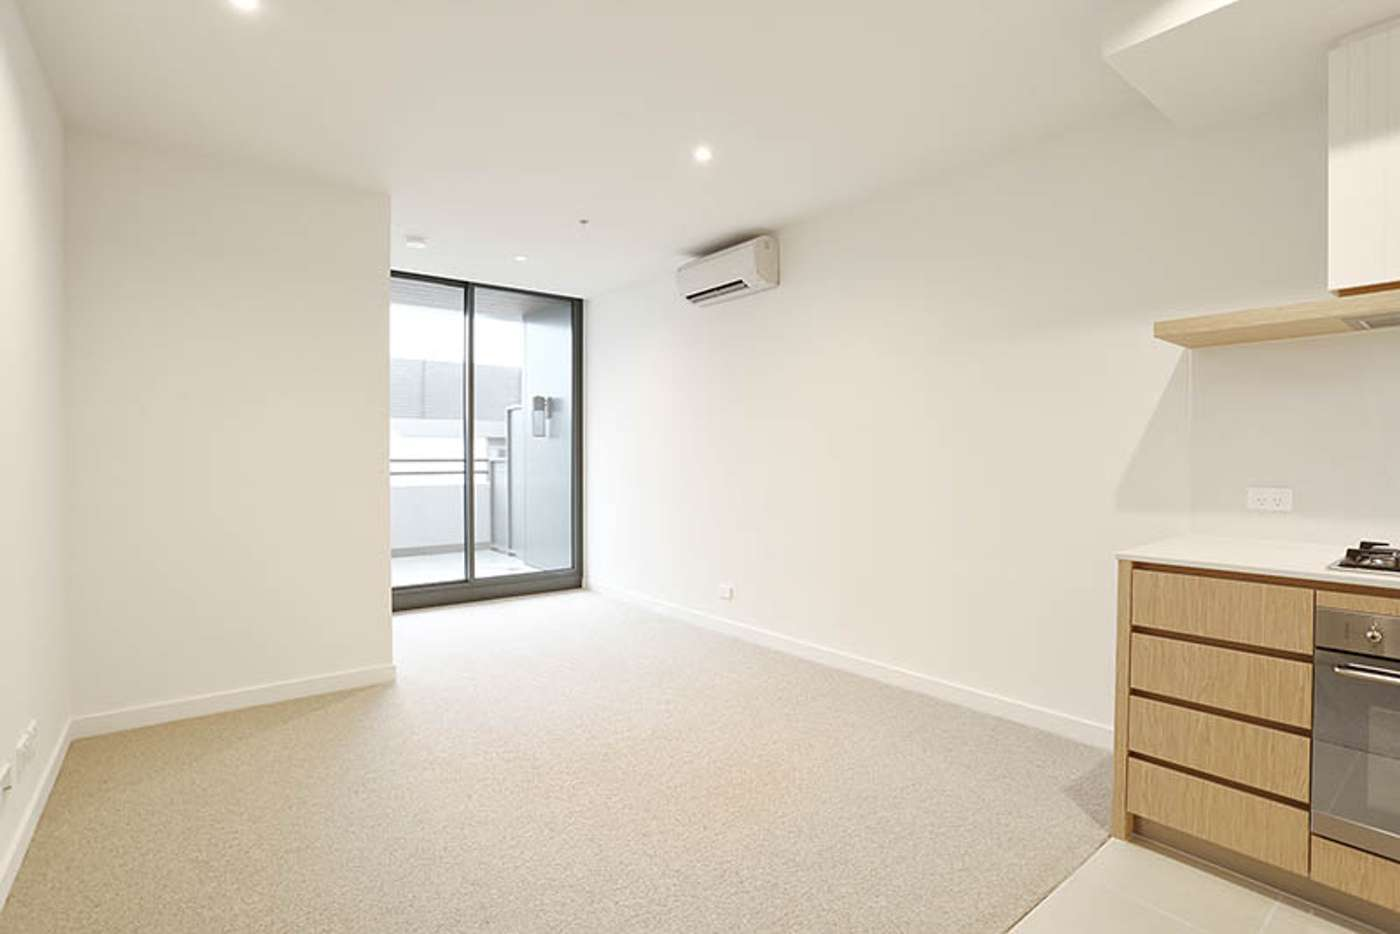 Fifth view of Homely apartment listing, A507/8 Station Street, Caulfield VIC 3162